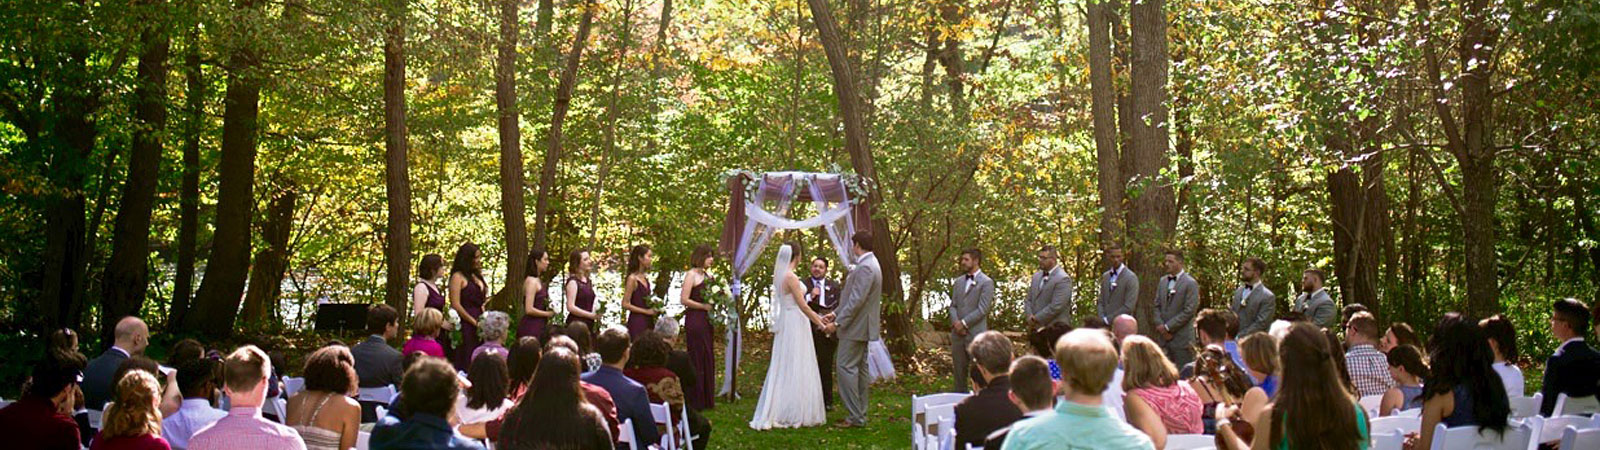 large outdoor wedding